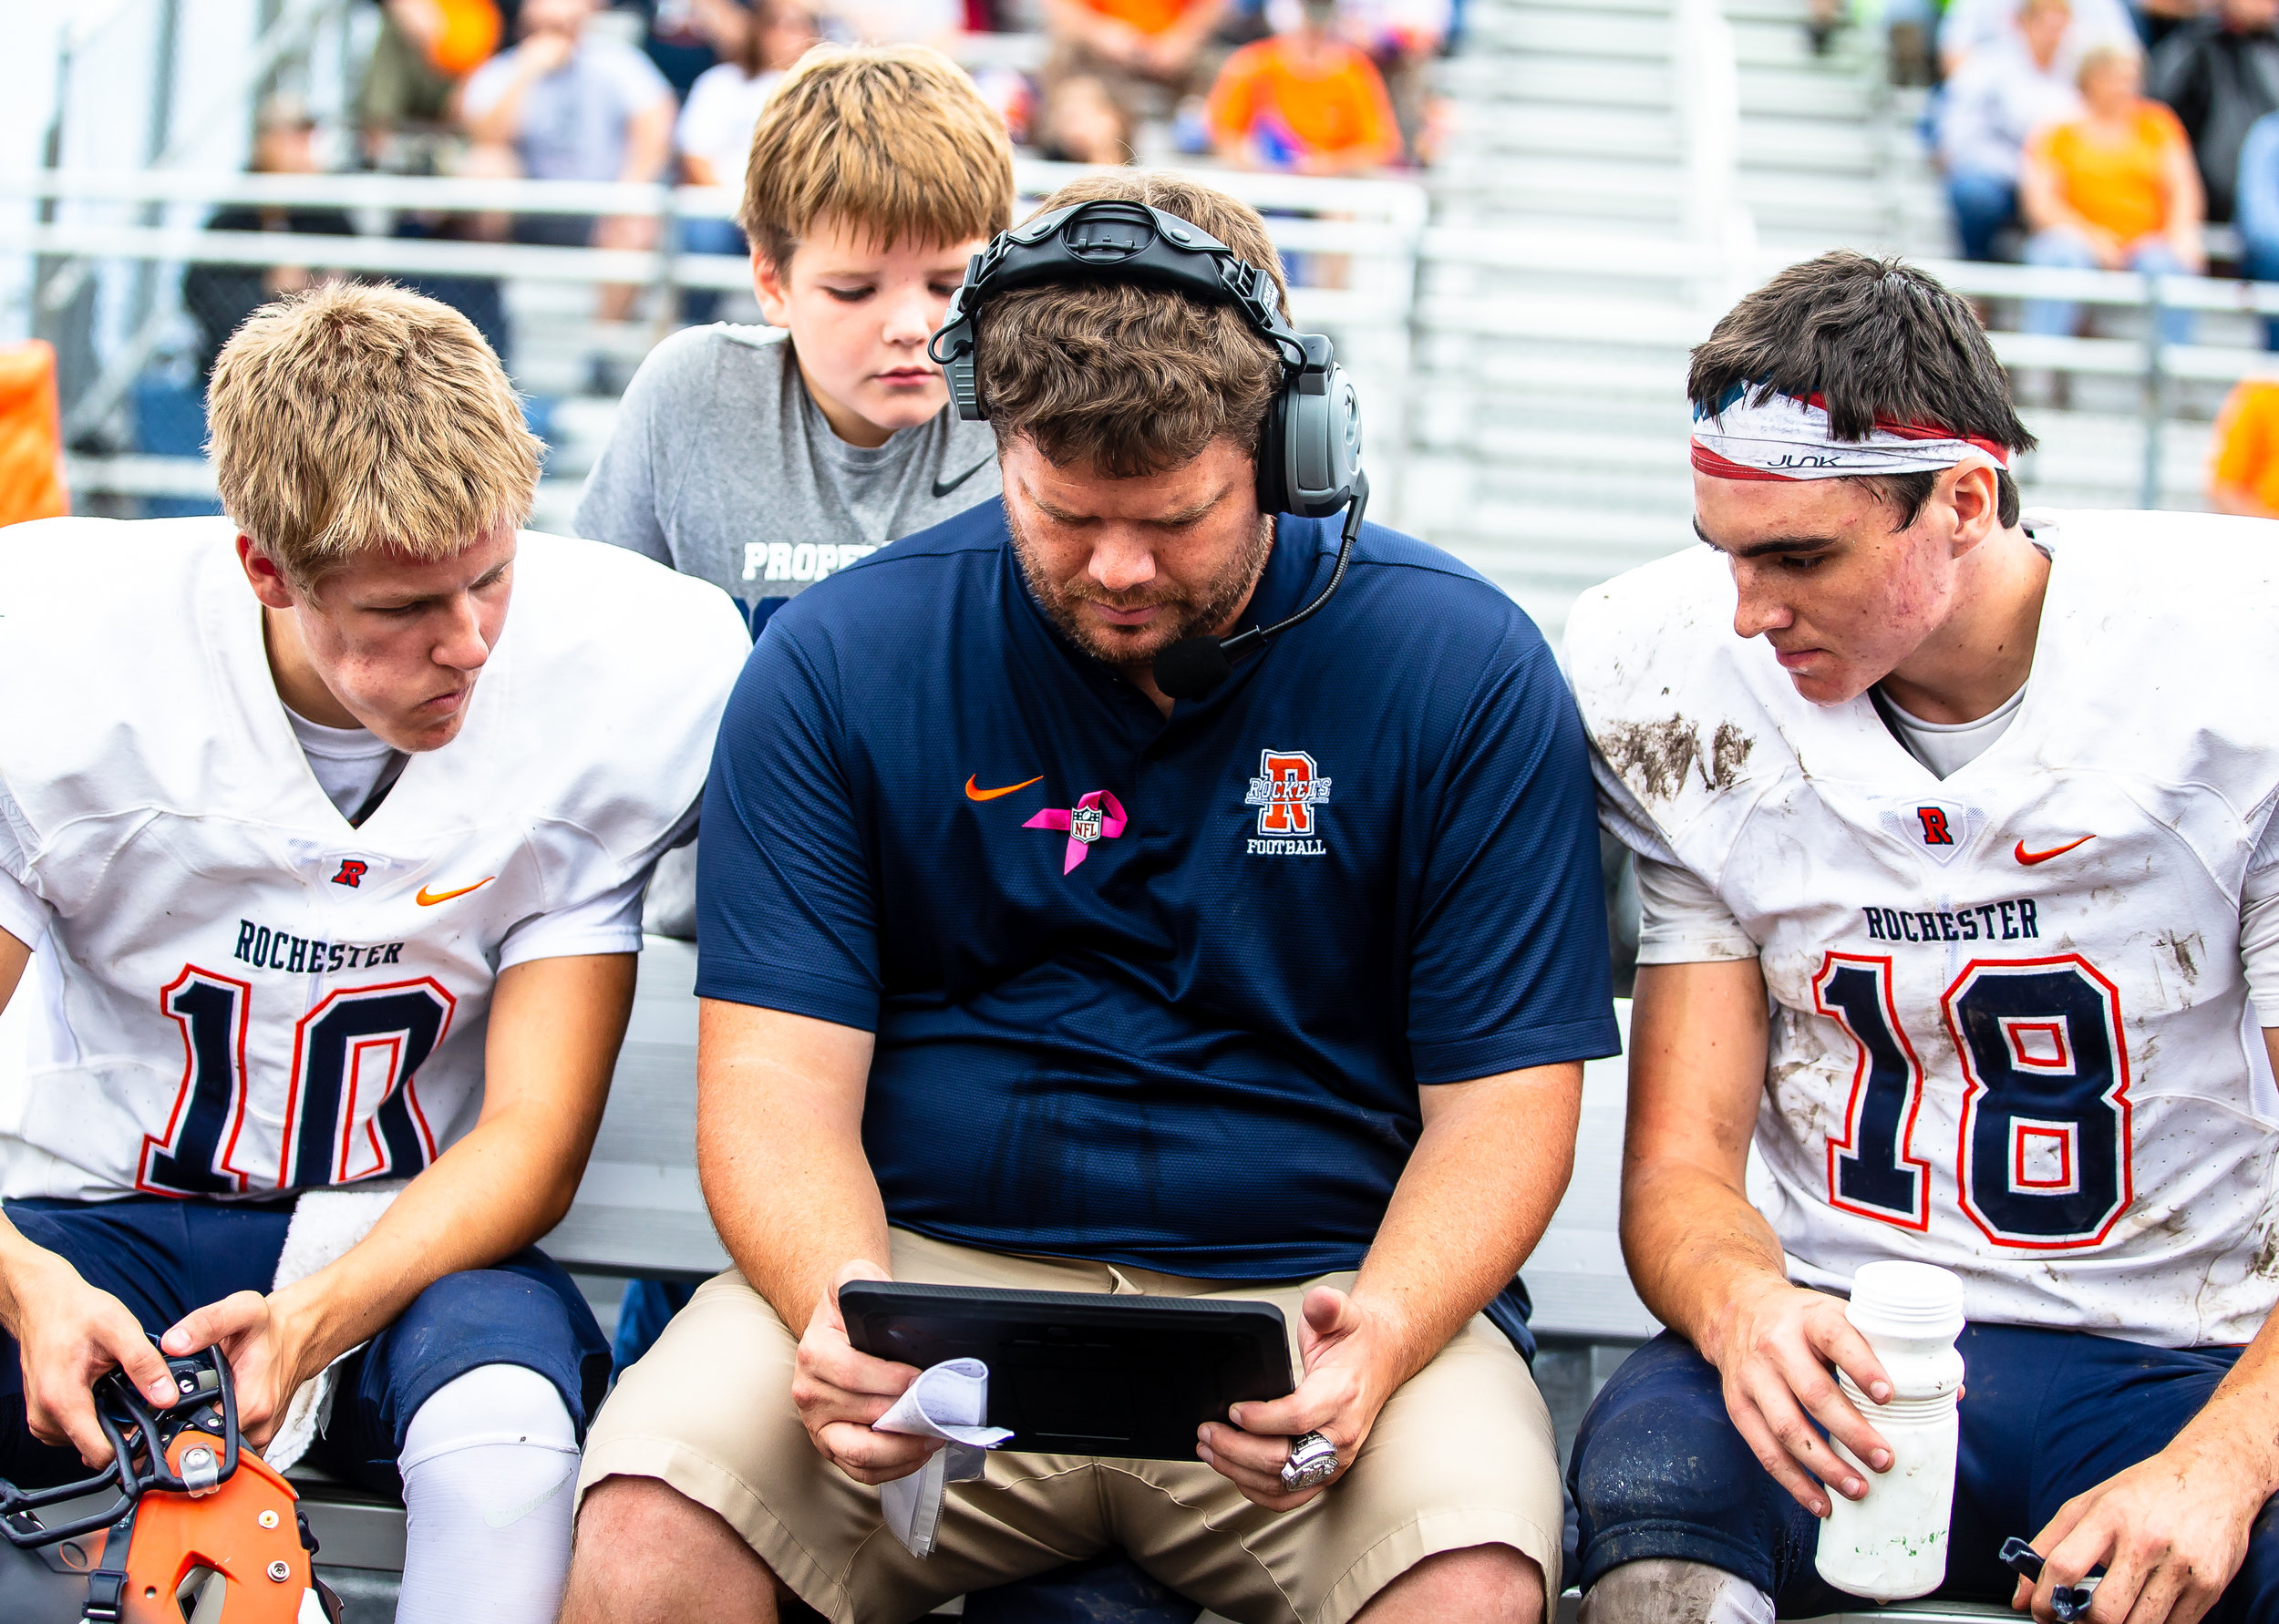 Rochester head coach Derek Leonard goes over replays with quarterbacks Brock Mackiney (10) and Clay Bruno (18)  as his son, Blake, watches over his shoulder as the Rockets take on Springfield at Memorial Stadium, Saturday, Oct. 6, 2018, in Springfield, Ill. [Justin L. Fowler/The State Journal-Register]